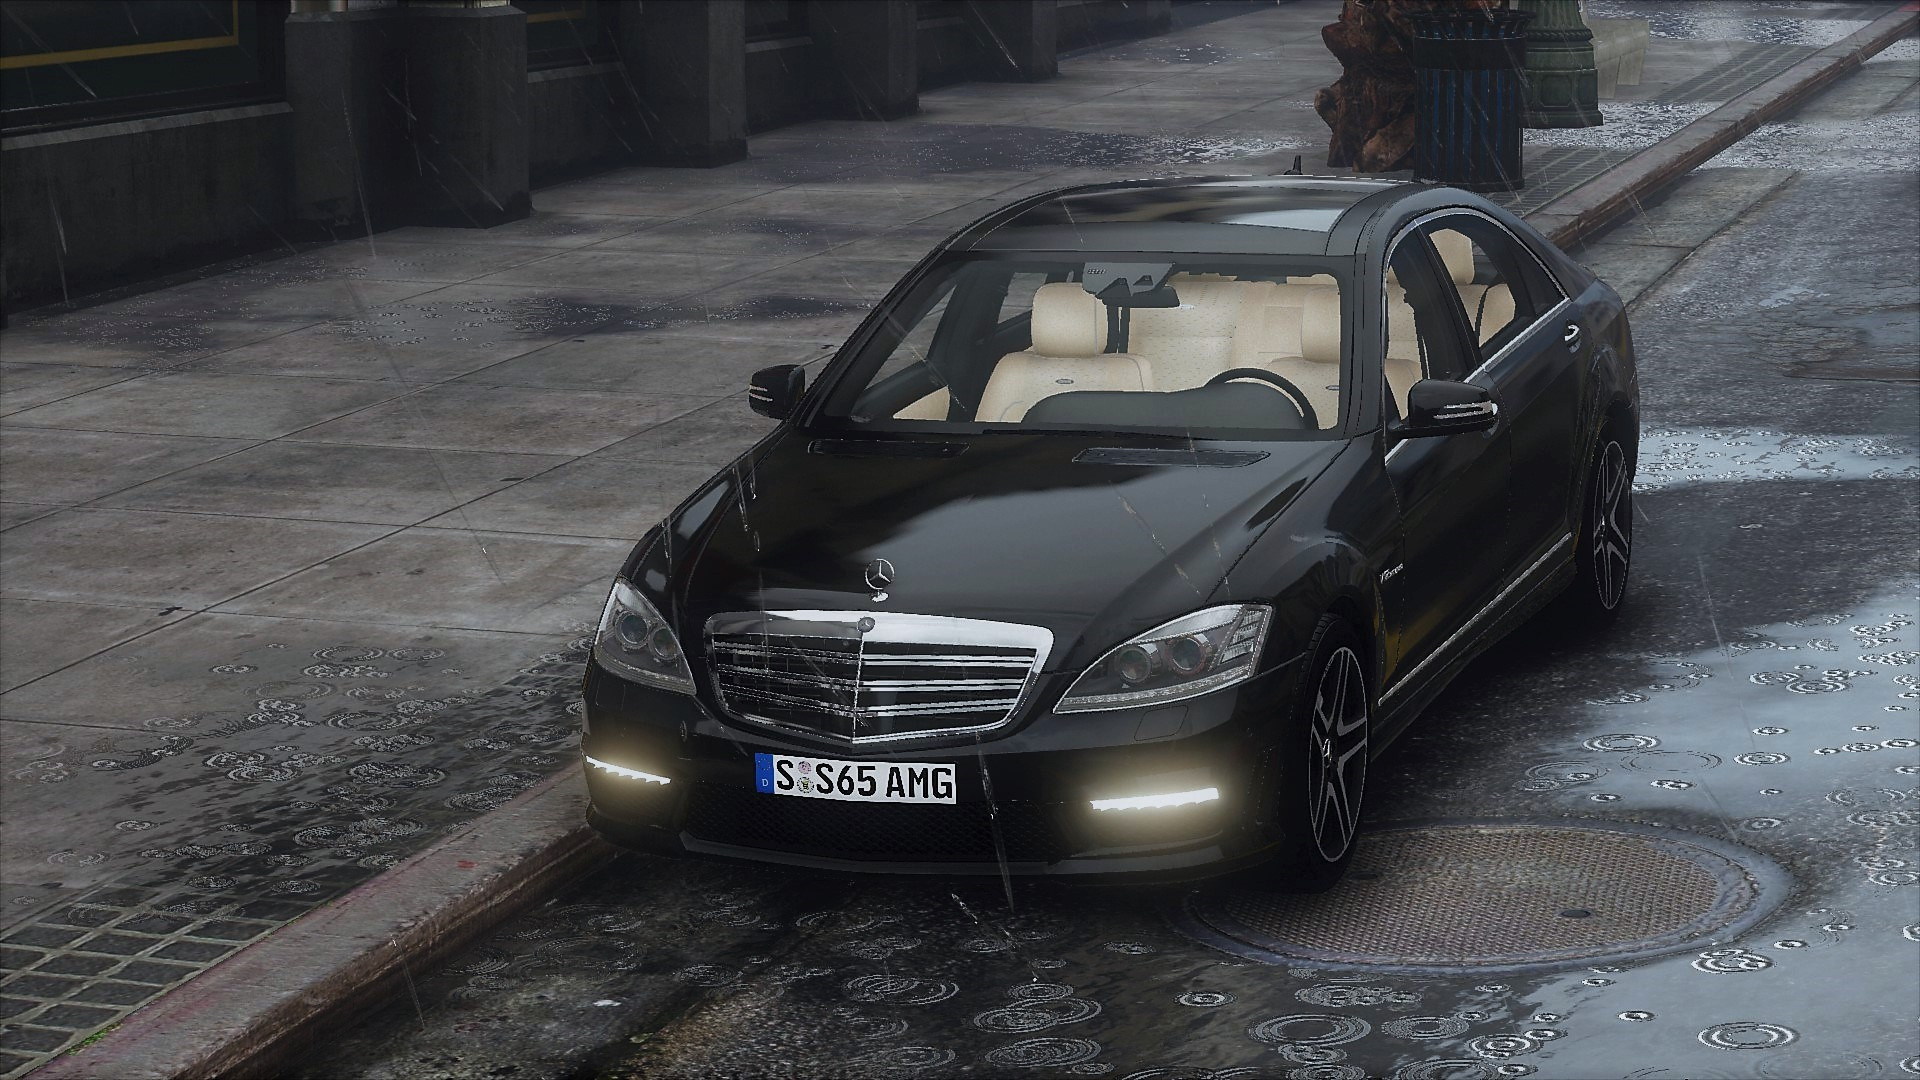 2012 mercedes benz s65 amg w221 add on tuning gta5 for Mercedes benz s600 amg 2010